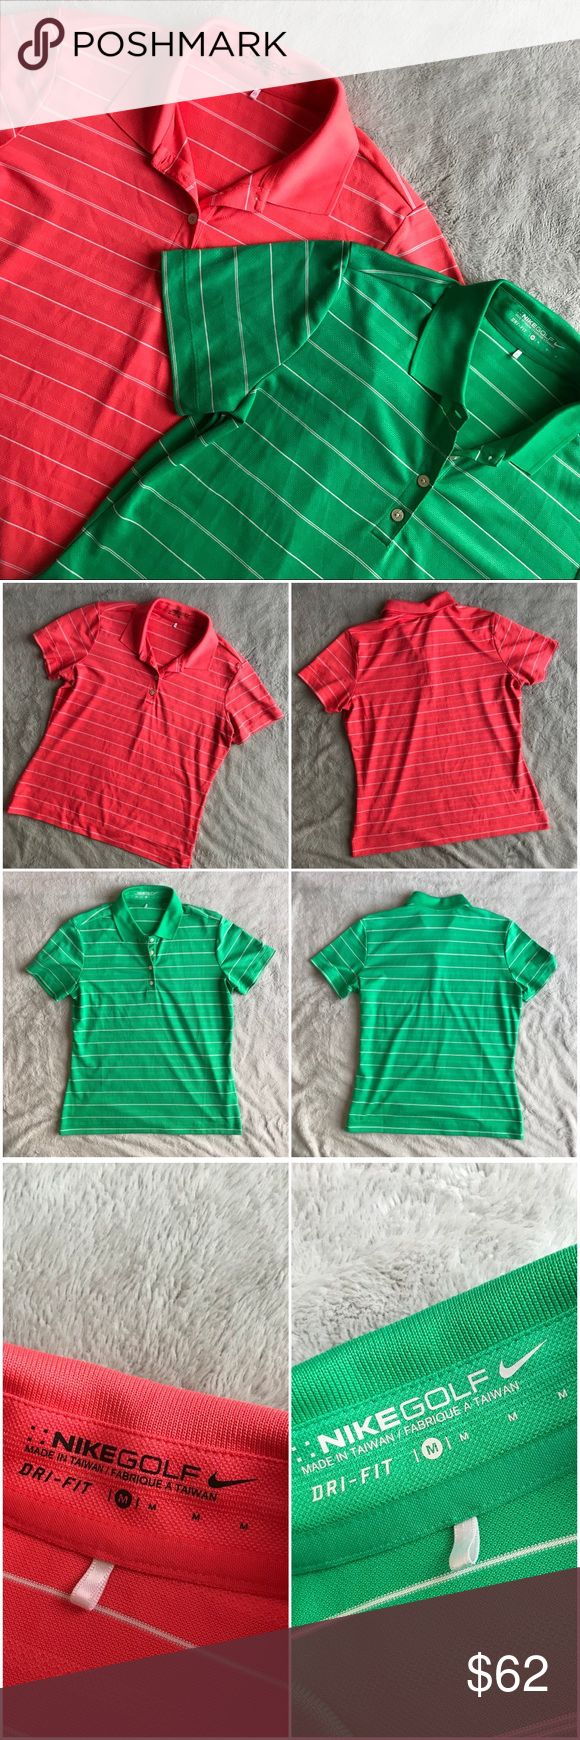 Nike Golf Polo Dri Fit Collar Shirt Bundle Excellent used condition. Bundle of two Nike Golf collared shirts, one in vibrant coral & white stripes and the other in bright green & white stripes. Dri-fit moisture wicking fabric. Short sleeves with 1/4 button front. Nike swoosh embroidered on left sleeve. Note: coral shirt has minor spot on front near bottom, see photos. Size medium, see photos for measurements. Nike Tops